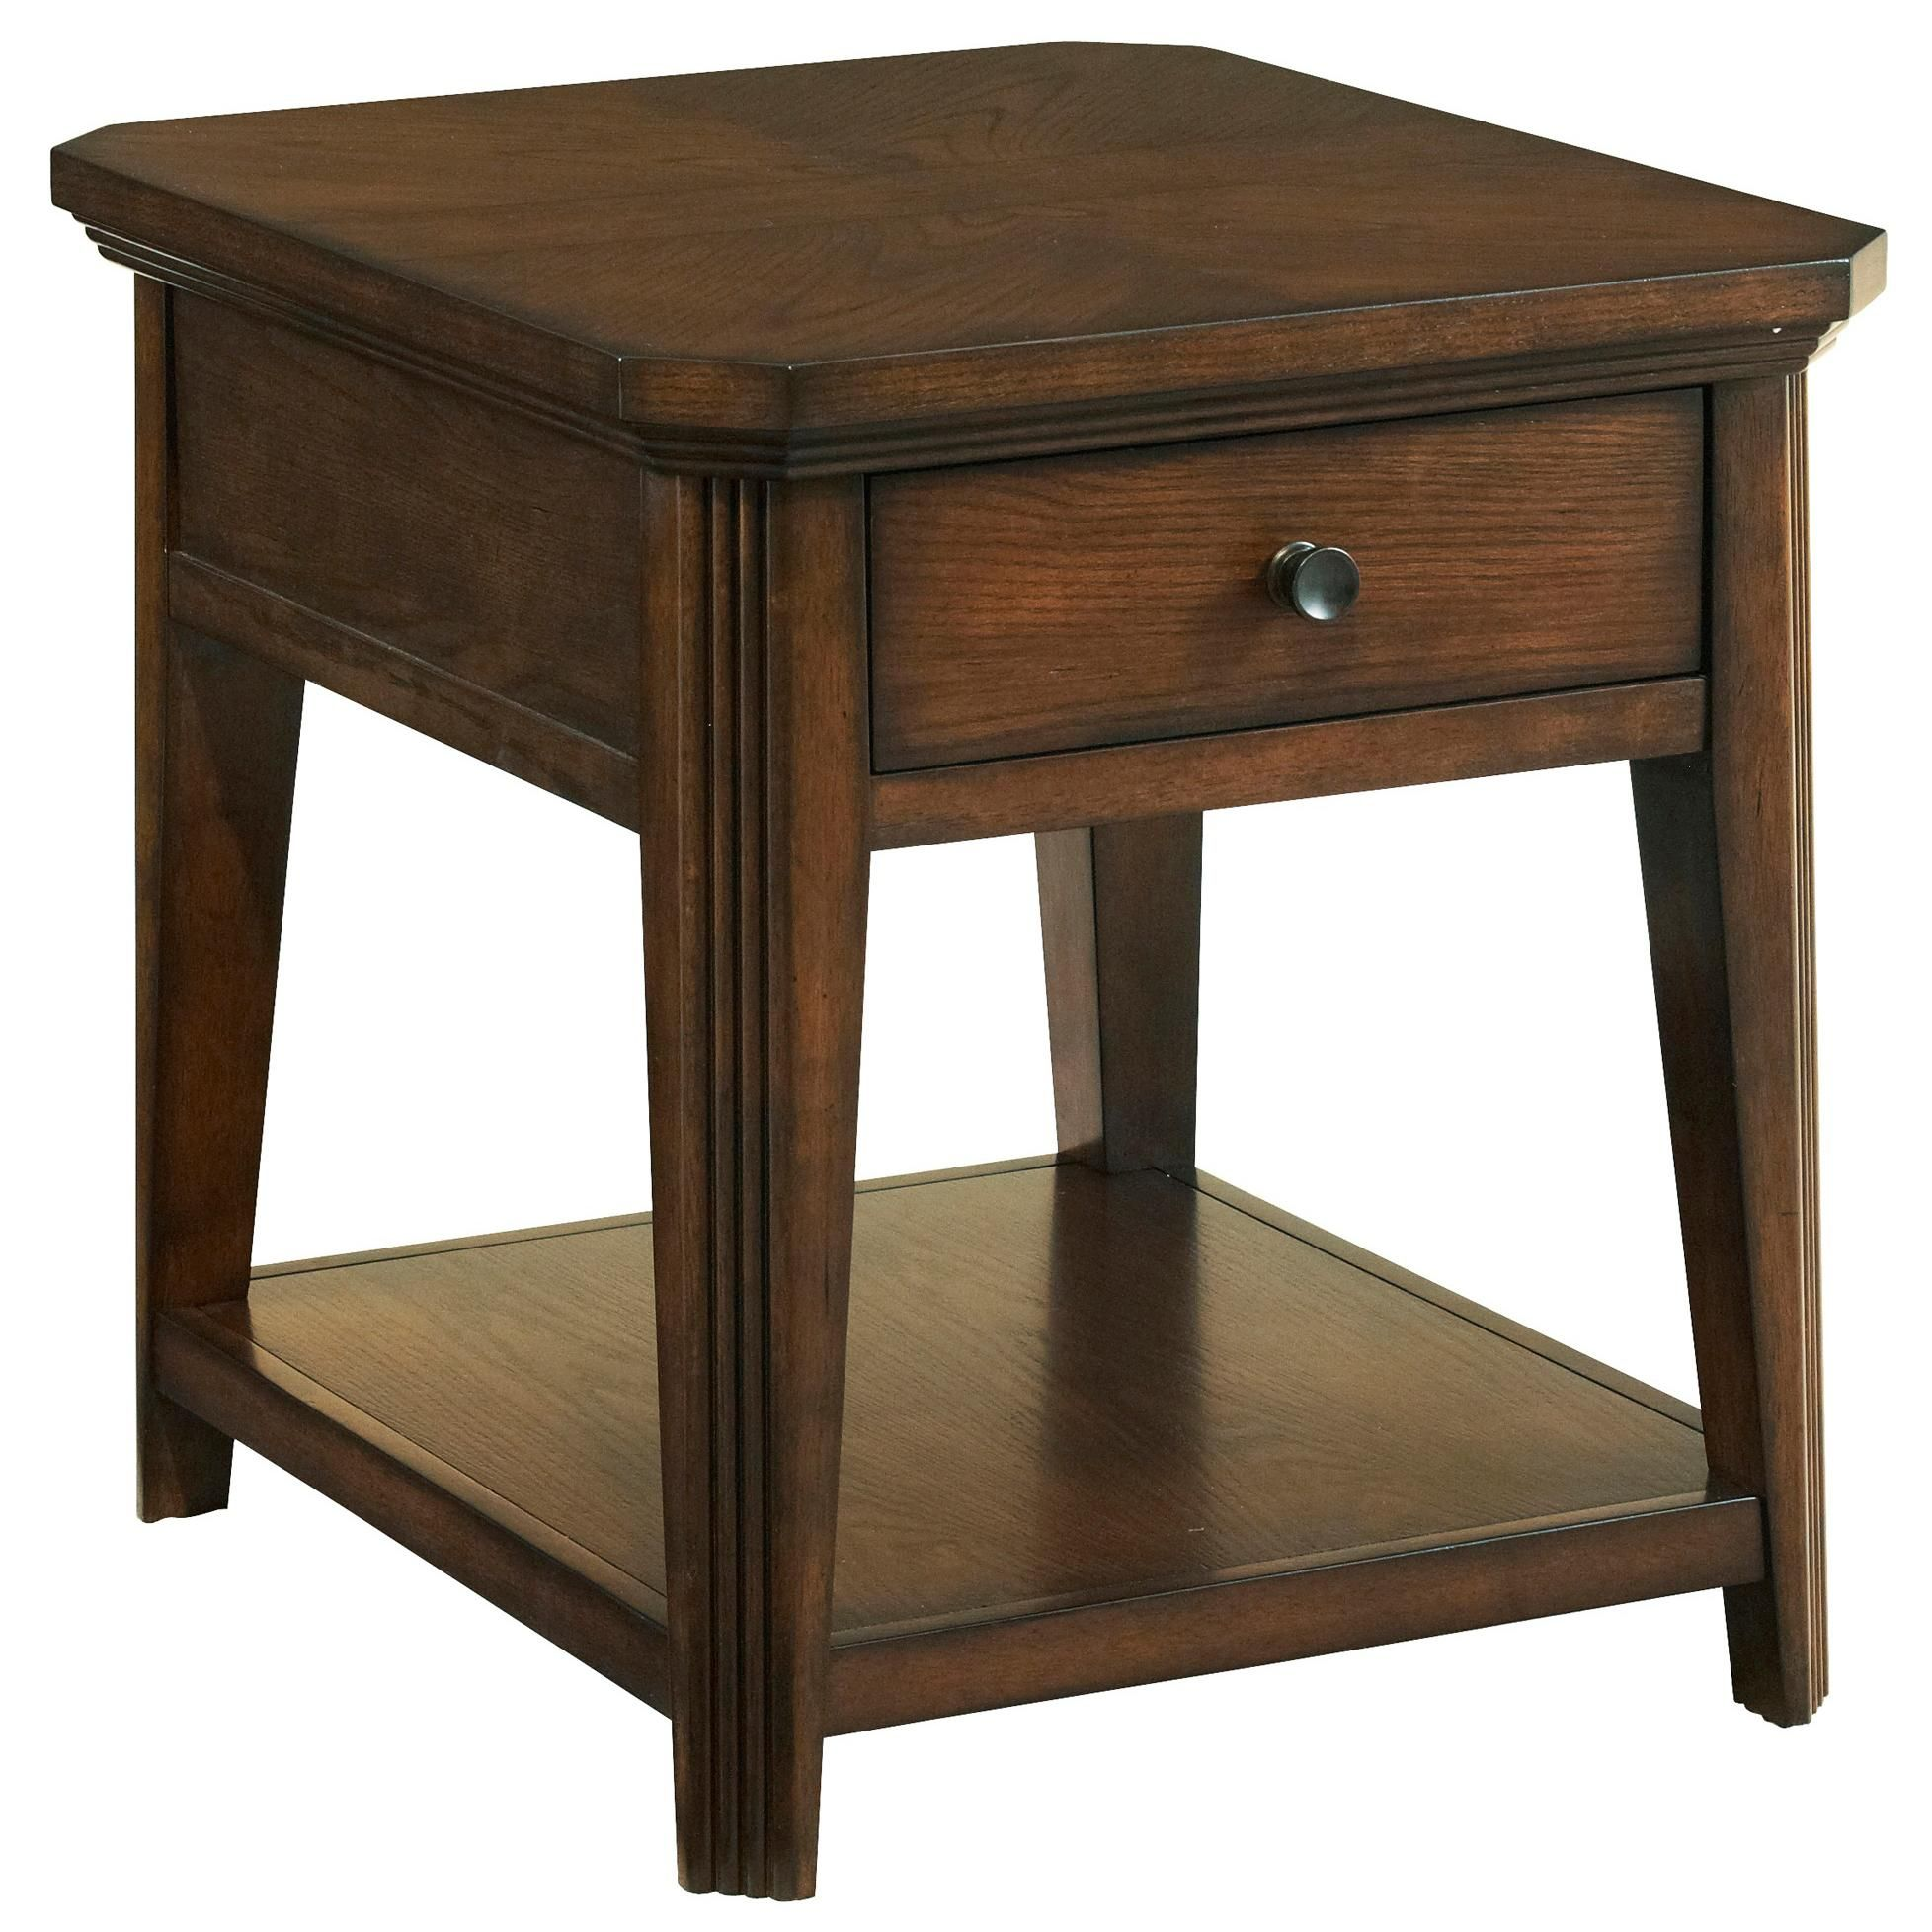 46++ Living room end tables with drawers ideas in 2021